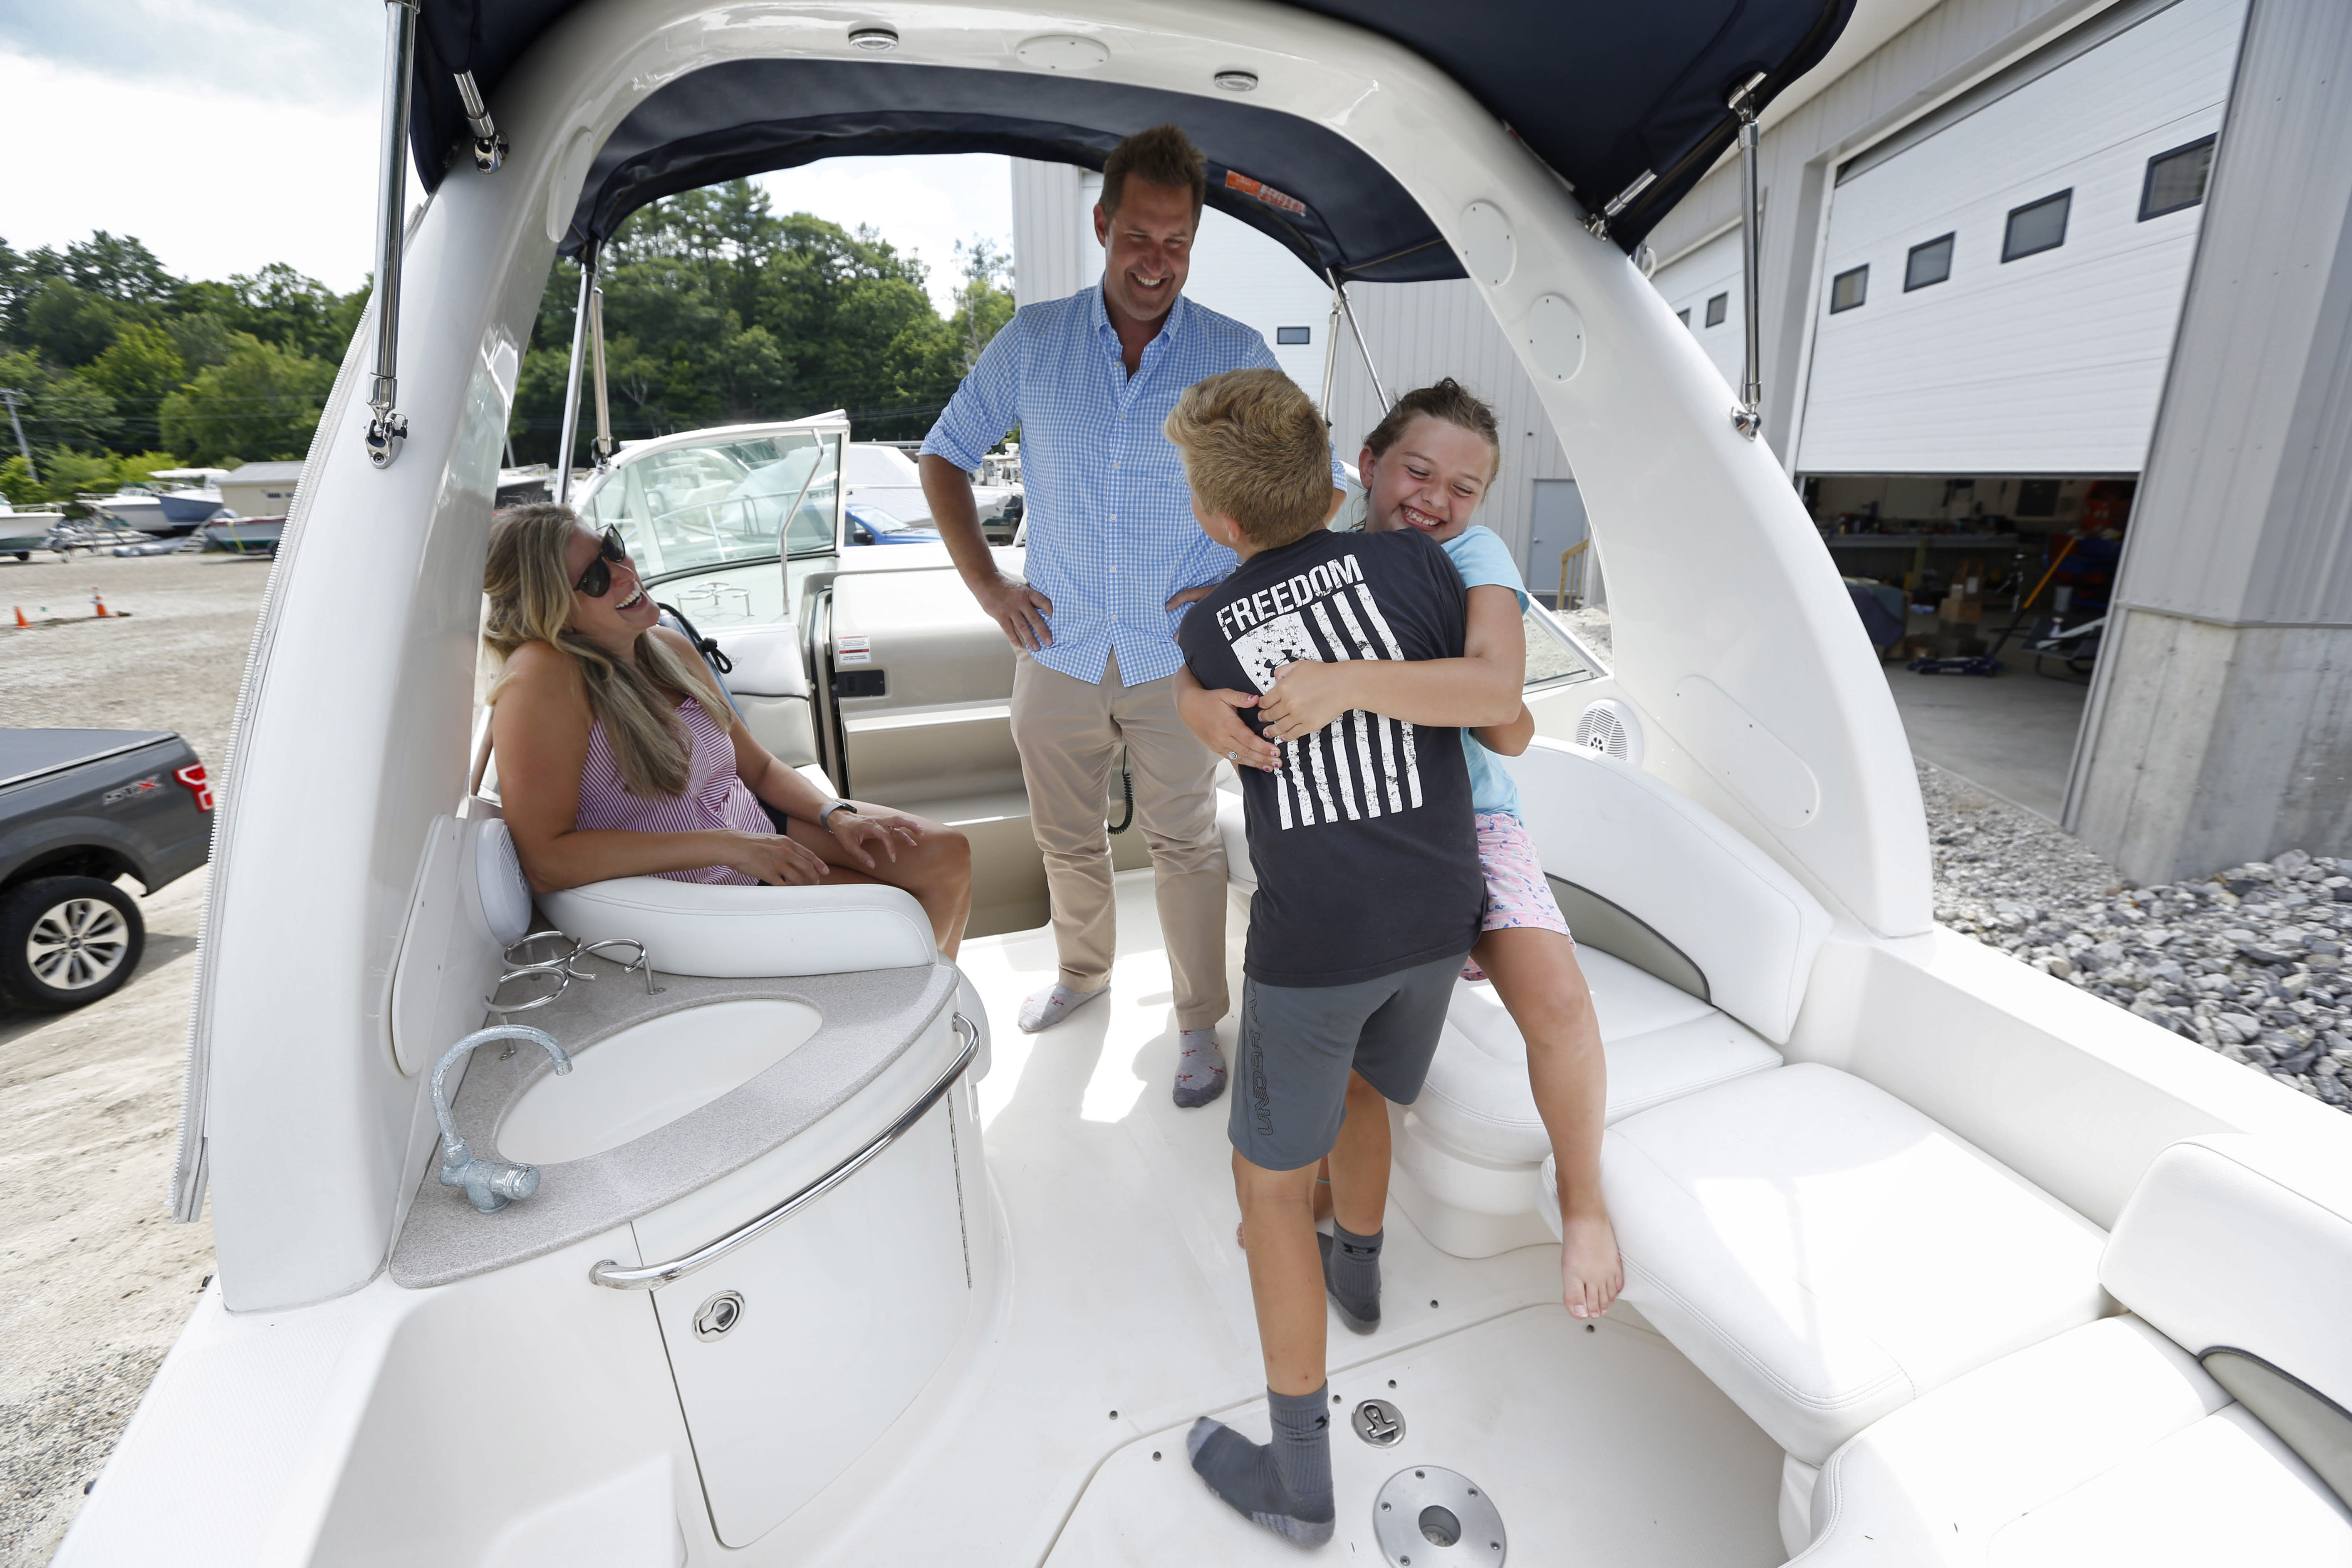 Carter Mitchell hugs his sister, Emerson, moments after climbing aboard the family's new boat, Friday, July 24, 2020, in Yarmouth, Maine. Brandon and Hilary Mitchell, of Cape Elizabeth, Maine, surprised their children with the new purchase after the coronavirus pandemic forced them to cancel summer travel plans. (AP Photo/Robert F. Bukaty)